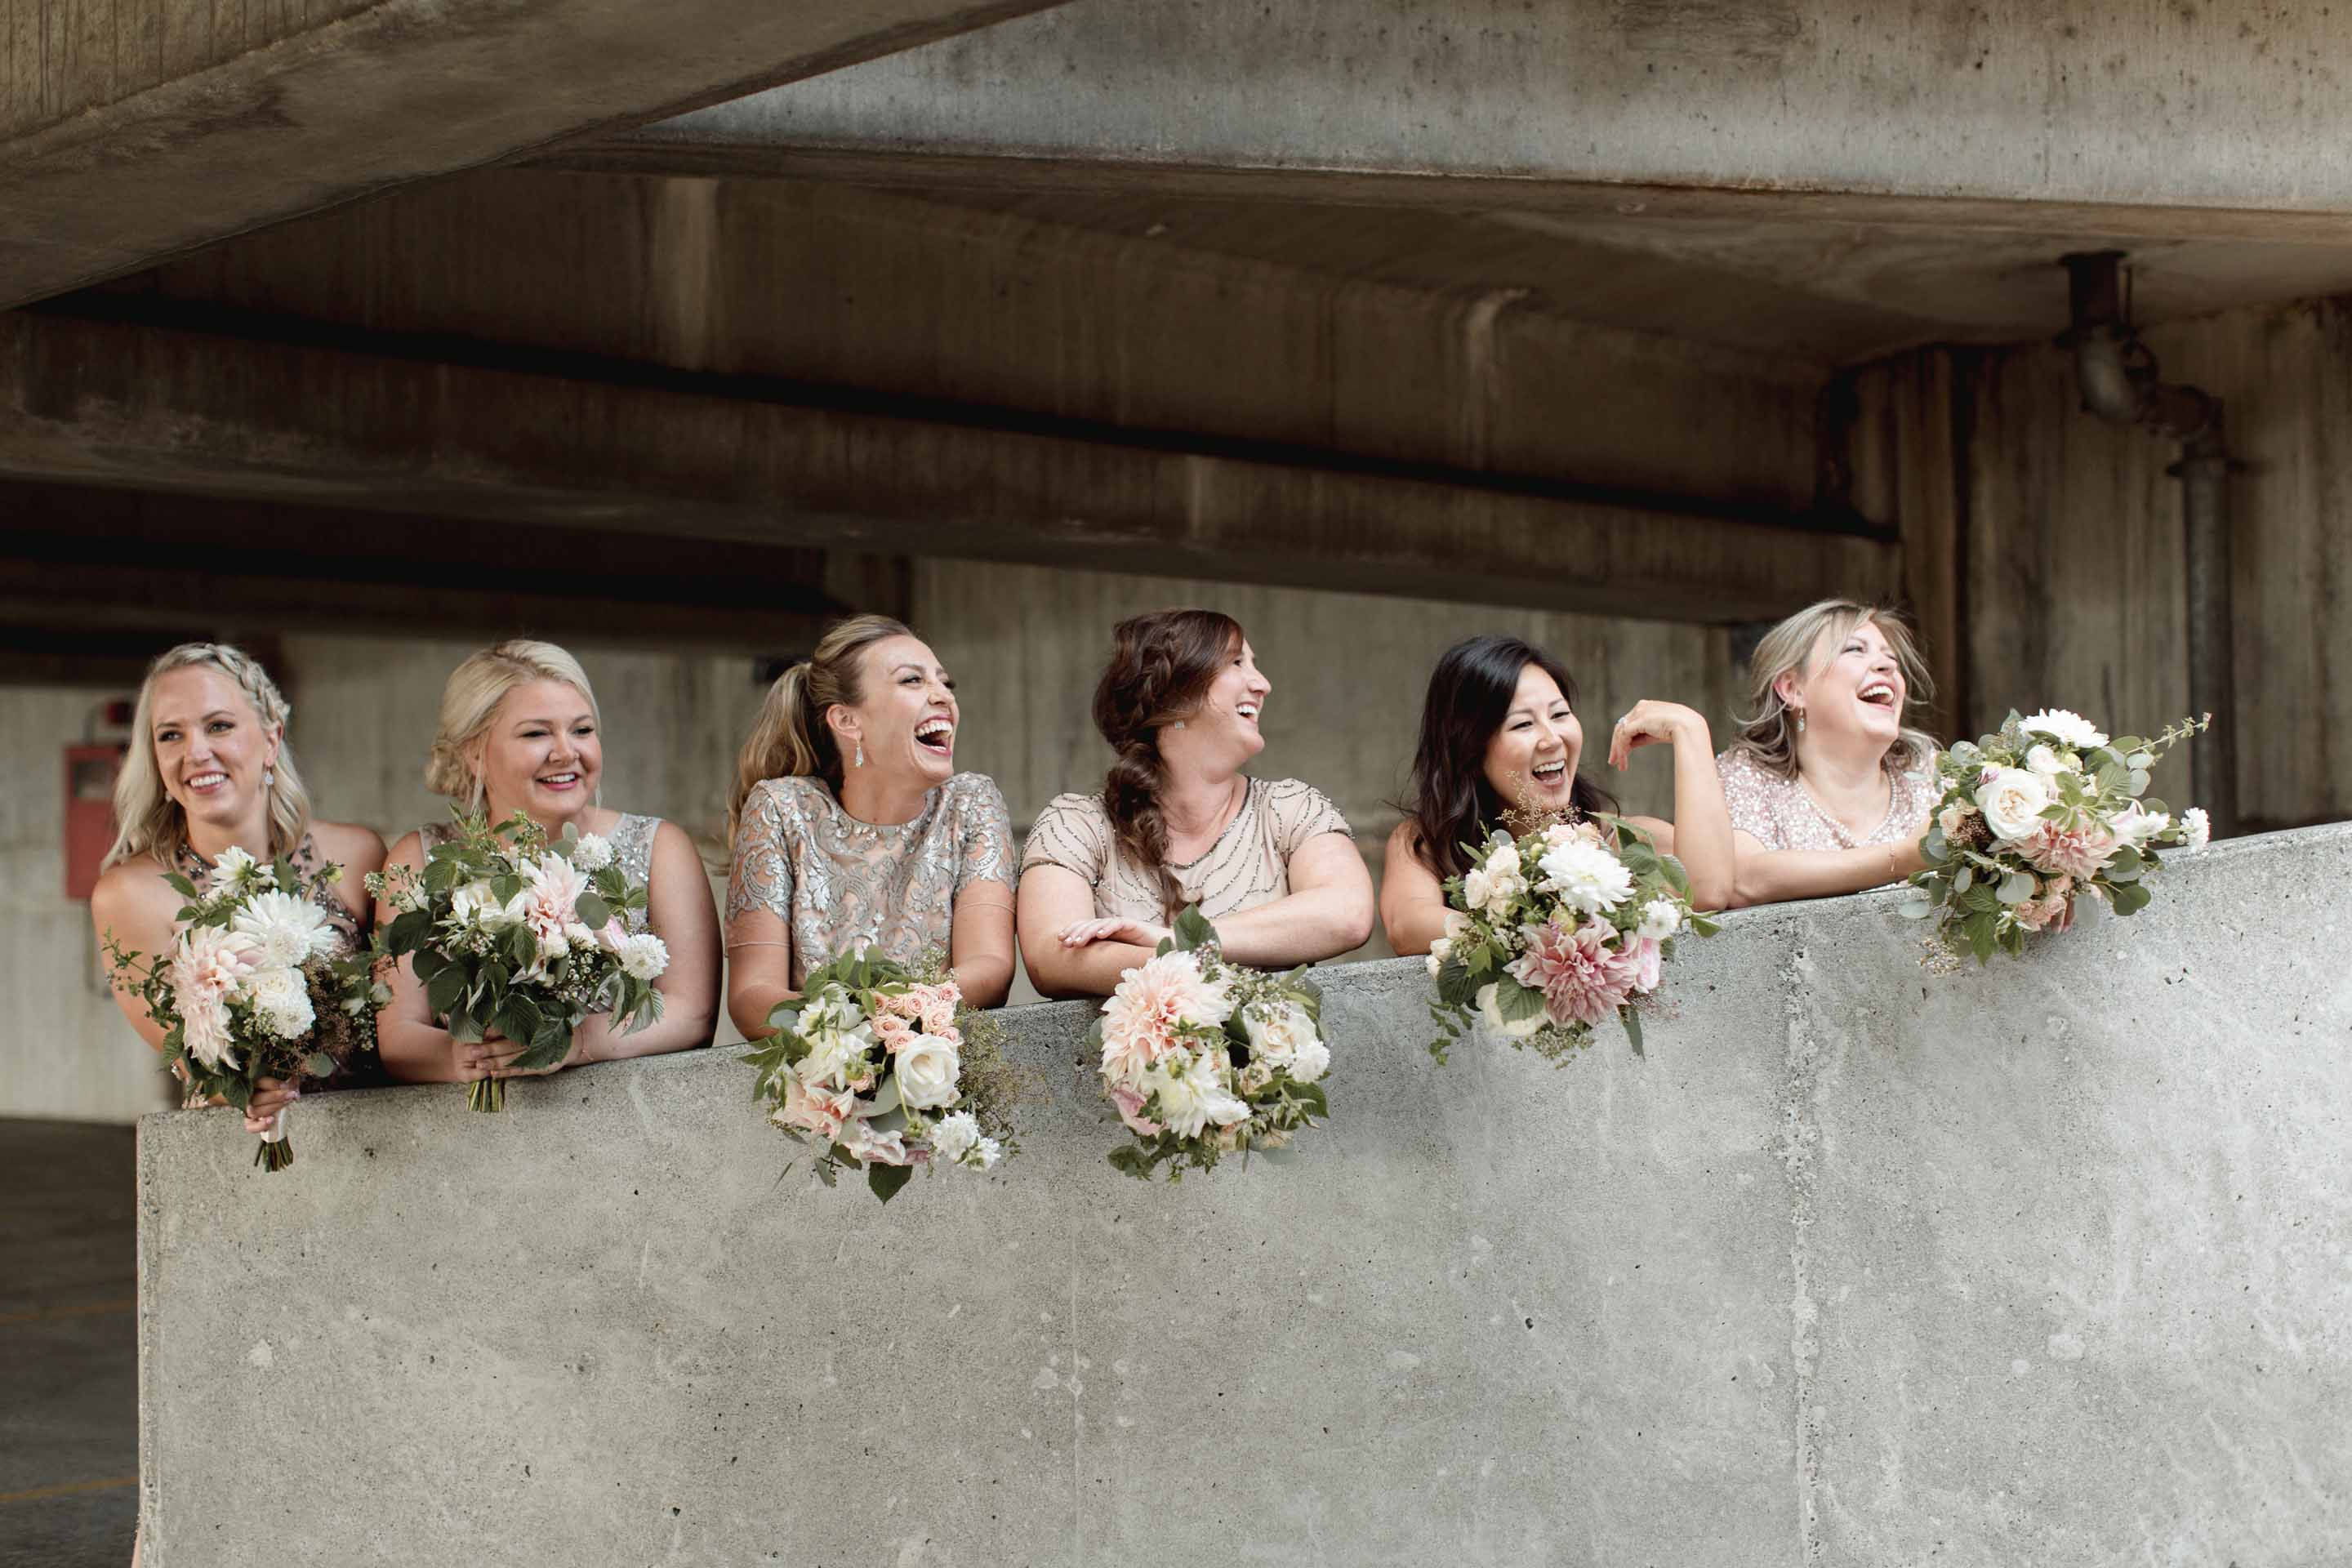 Bridal party with floral bouquets leaning over wall, flowers designed by Flora Nova design Seattle